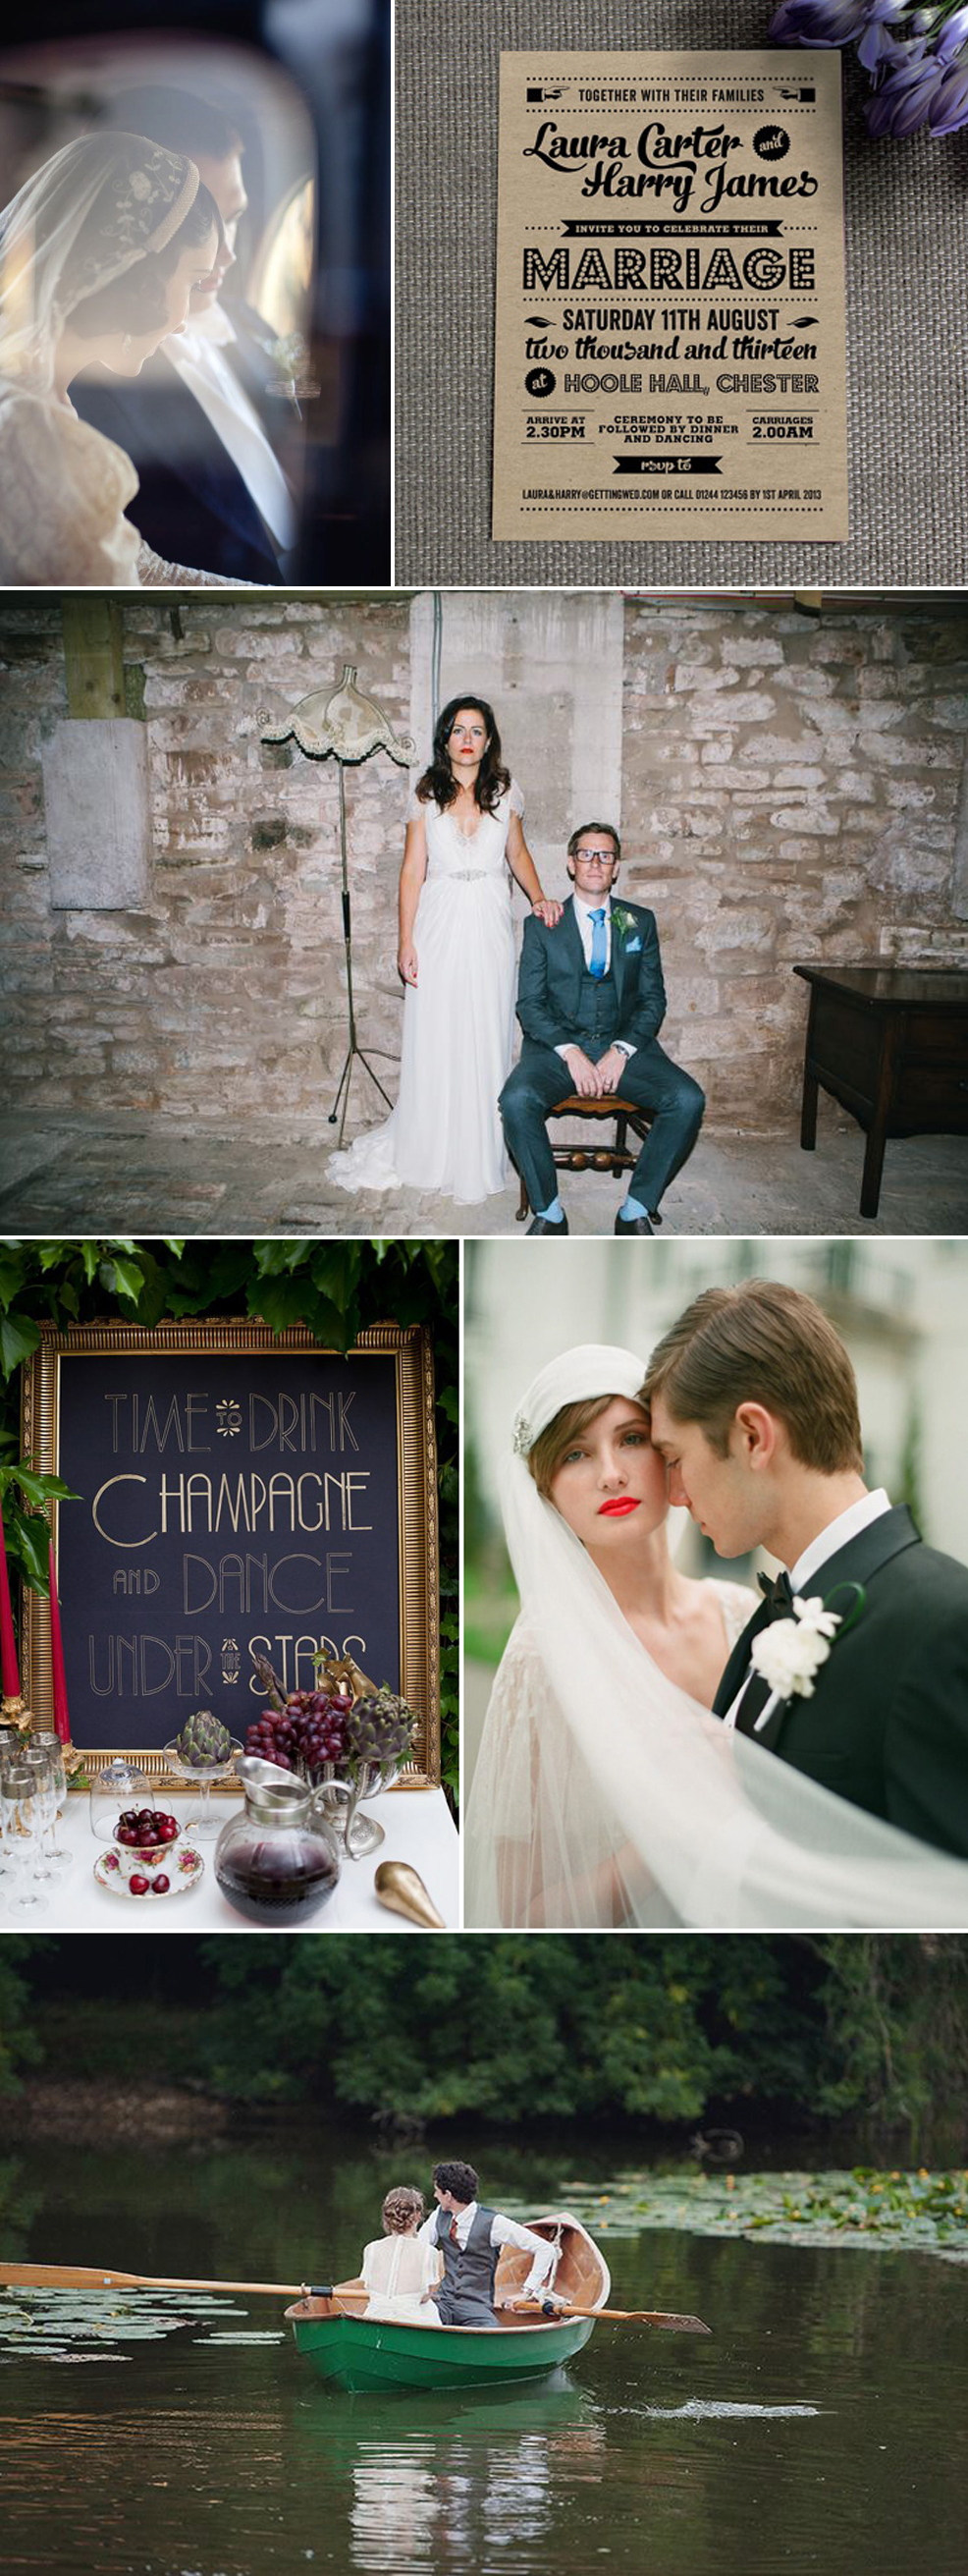 Coco Wedding Venues - Modern Vintage - Wedding Style Category - The Vibe.